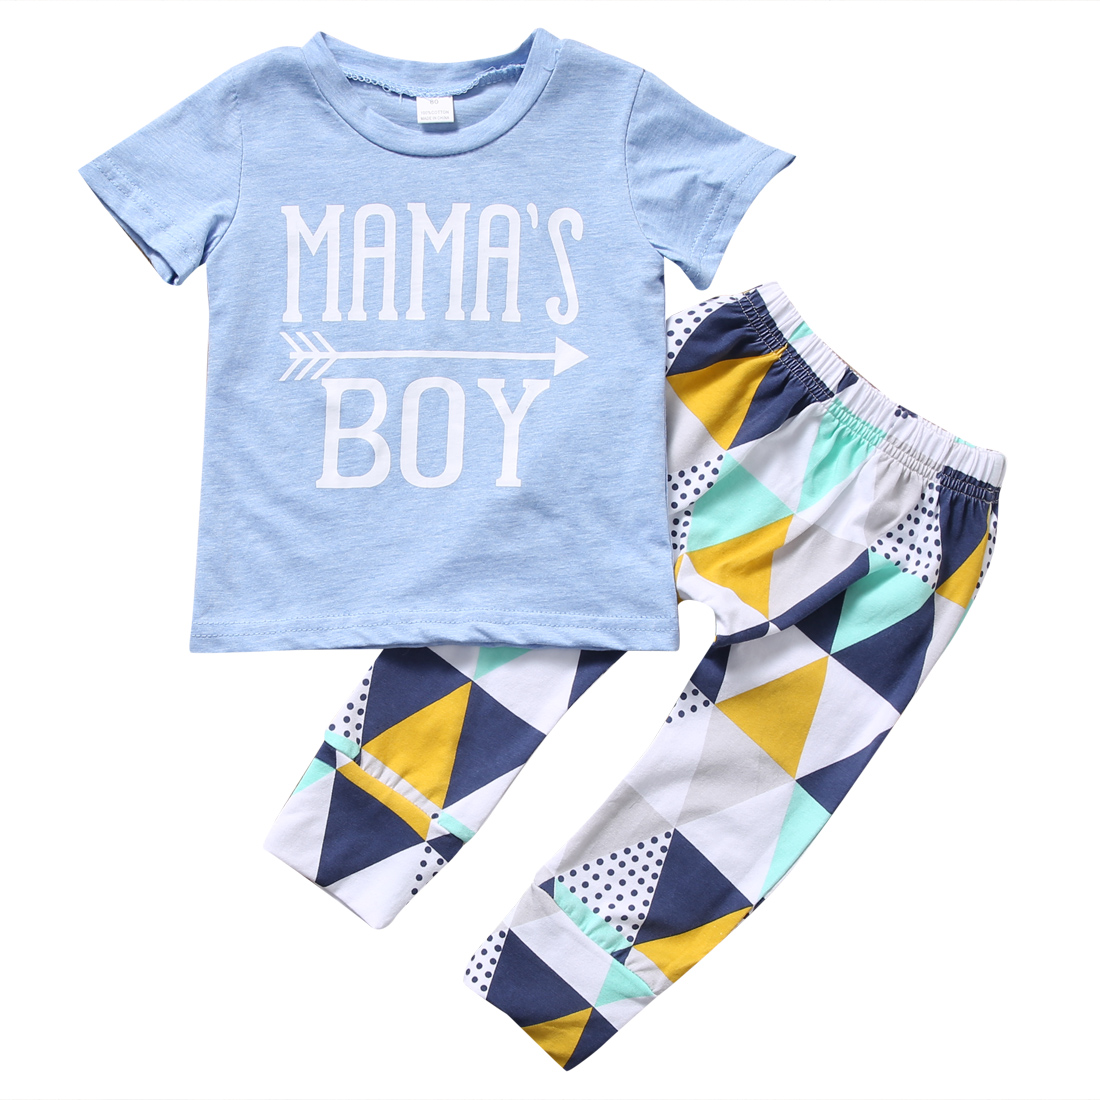 2017 Cute Newborn Baby Boy Clothes Summer Short Sleeve Mama's Boy Cotton T-shirt Tops Pant 2PCS Outfit Toddler Kids Clothing Set 2017 cute kids girl clothing set off shoulder lace white t shirt tops denim pant jeans 2pcs children clothes 2 7y